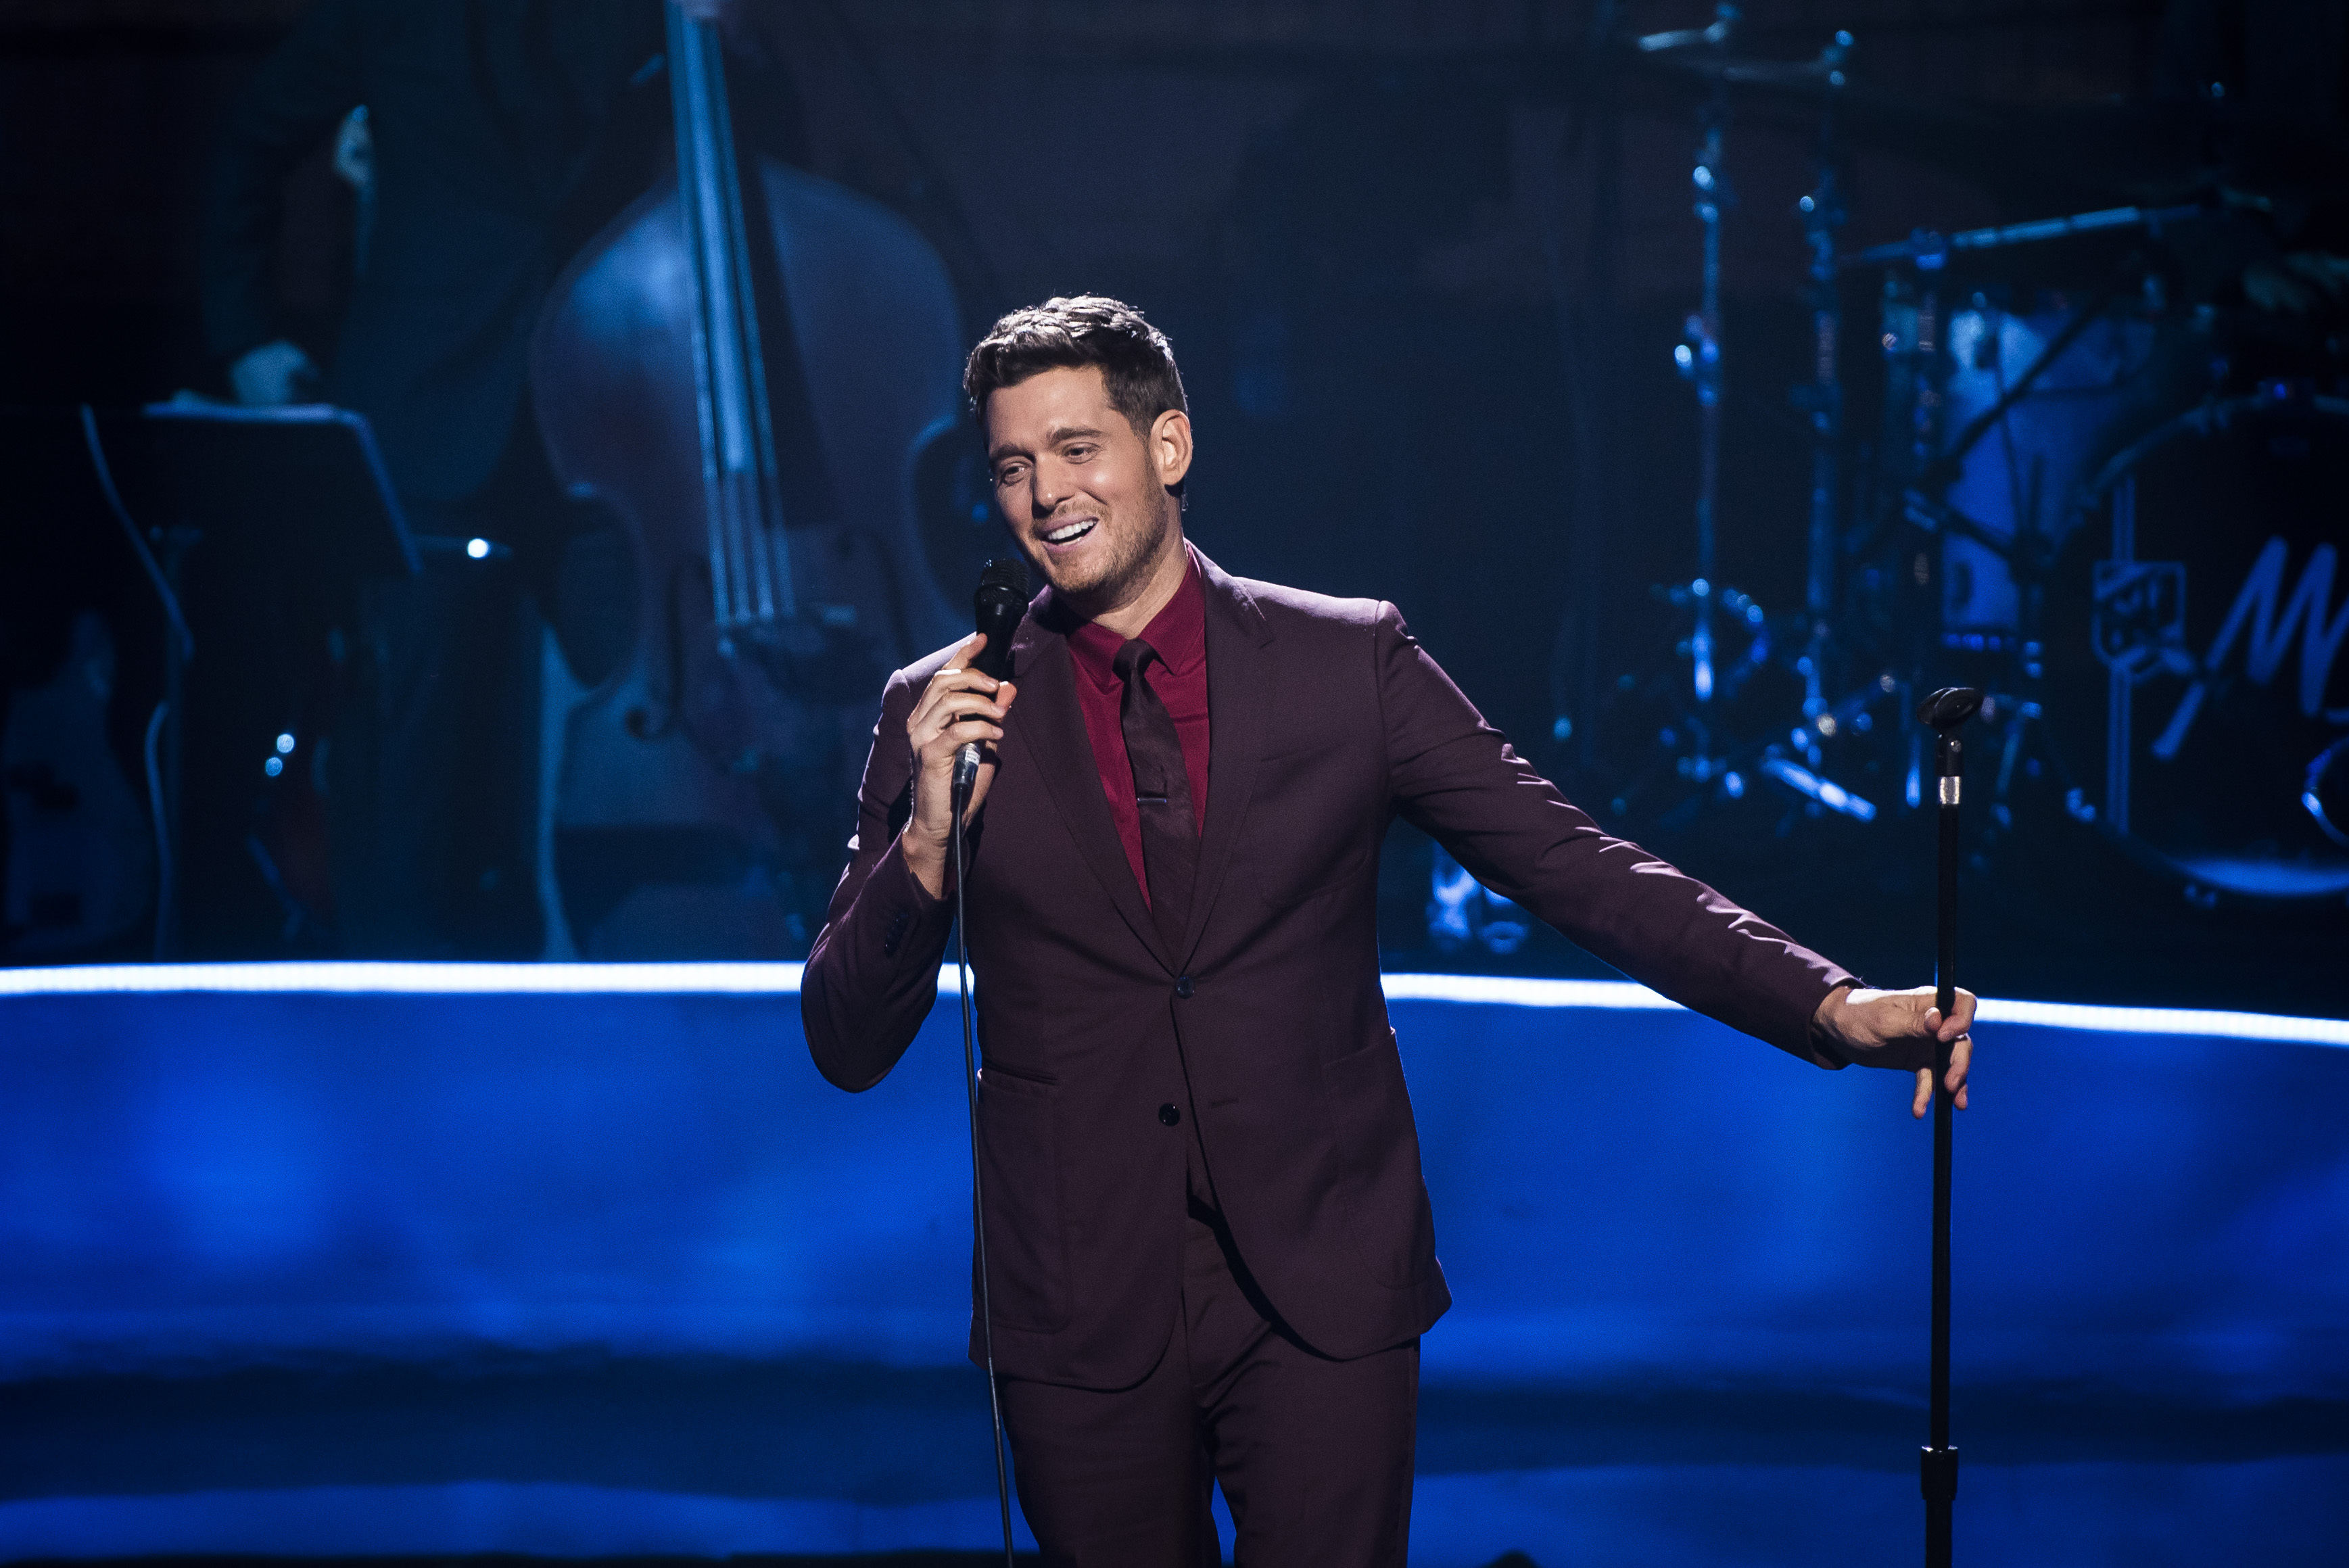 Michael Buble quits social media and talks 'retiring' from music